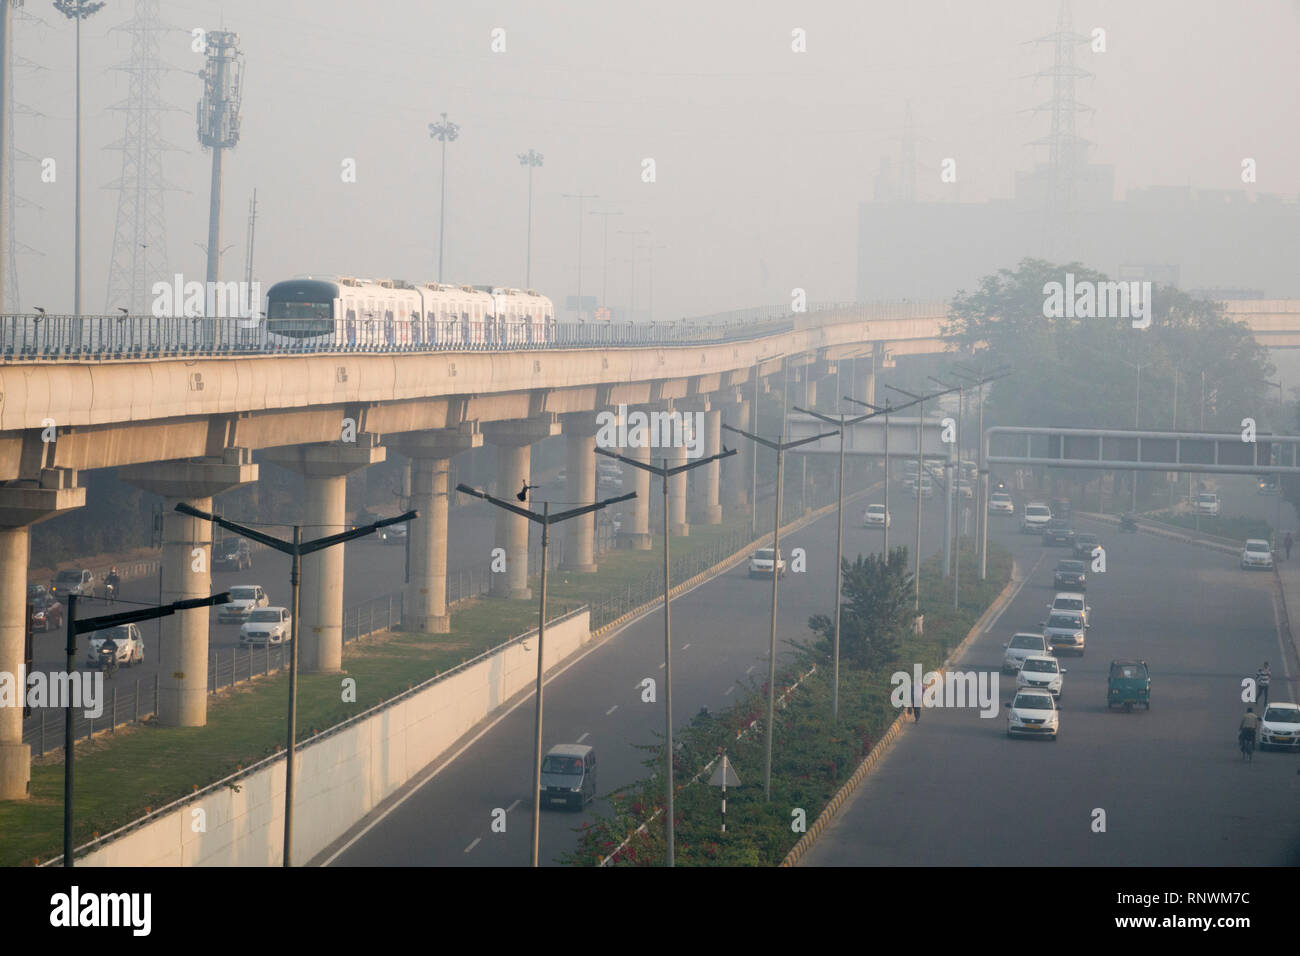 Metro train and traffic in hazardous levels of air pollution in Cyber City, Gurugram, India - Stock Image